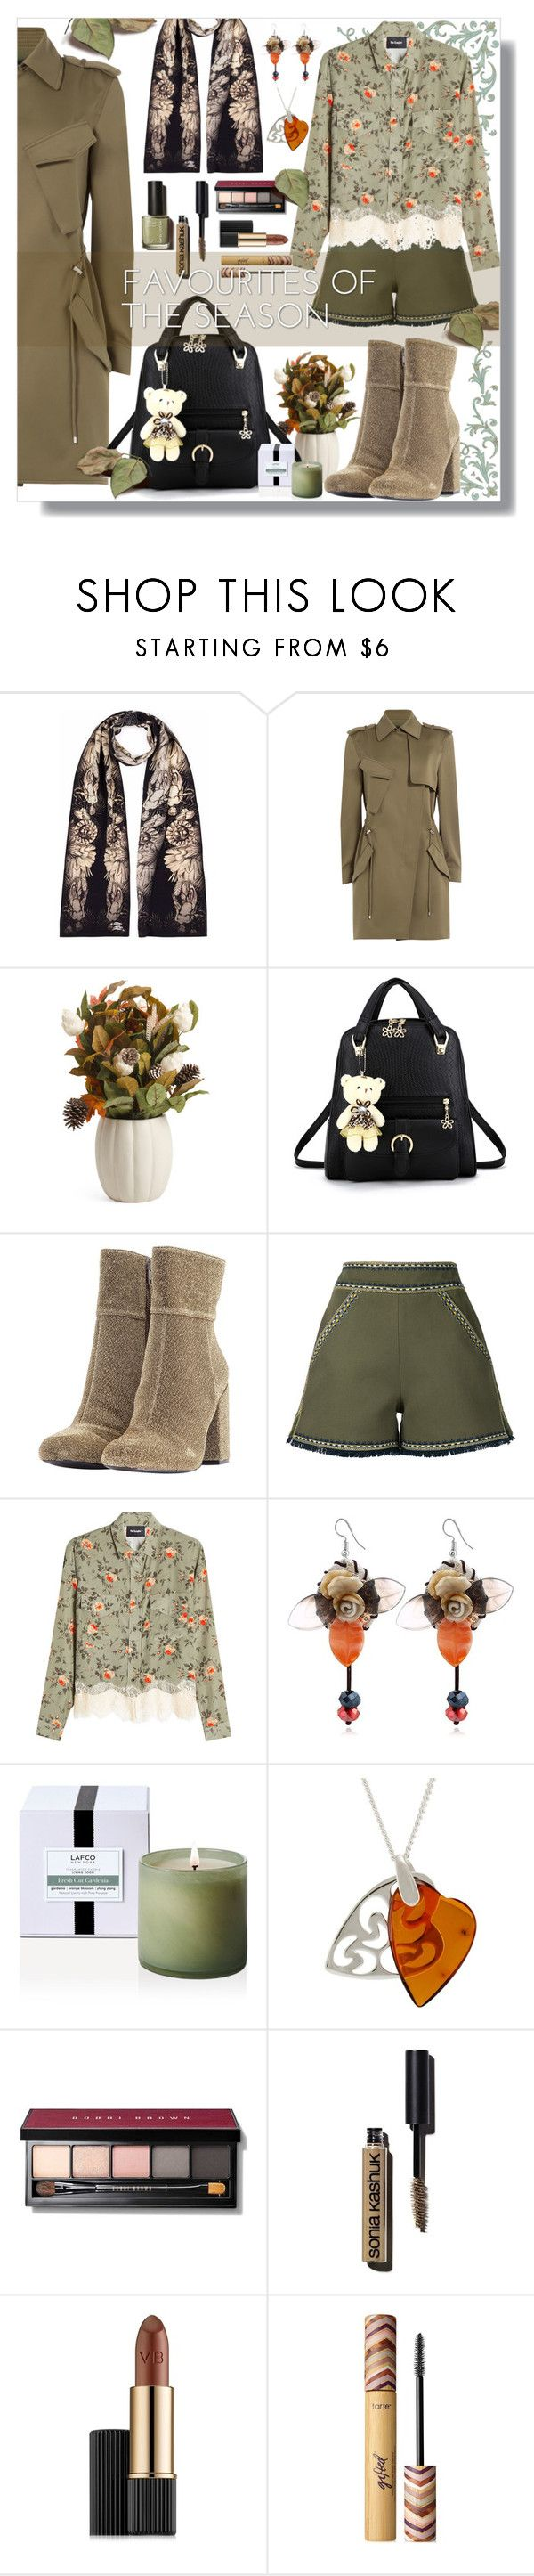 """""""Untitled #107"""" by shewalksinsilence ❤ liked on Polyvore featuring Louise Coleman, Alexander Wang, Talitha, The Kooples, LAFCO, Be-Jewelled, Bobbi Brown Cosmetics, Sonia Kashuk, Estée Lauder and tarte"""